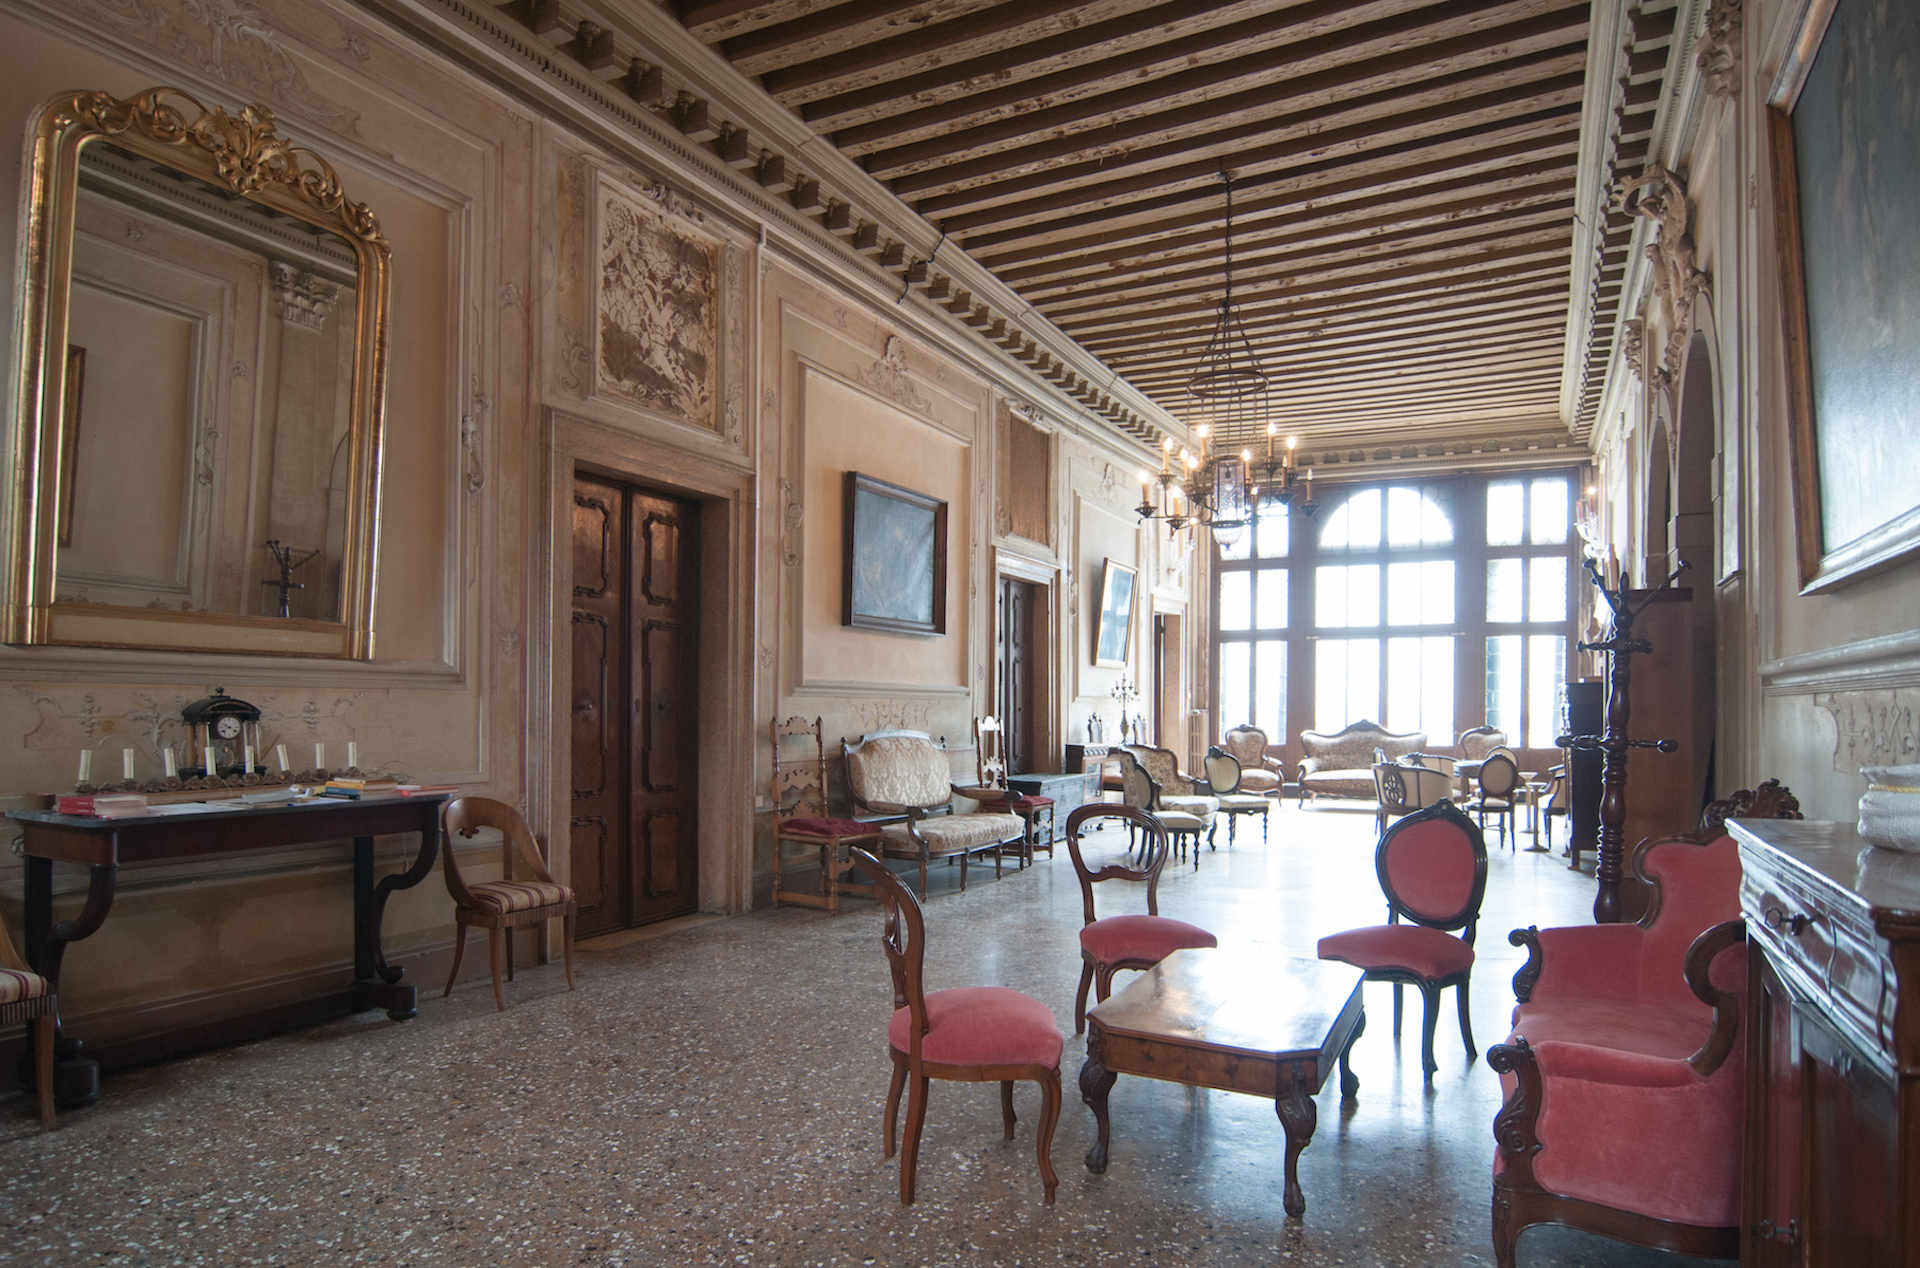 Wohnung für Verkauf beim Historic Piano Nobile with canal views and terrace Cannaregio Venice, Venice Italien